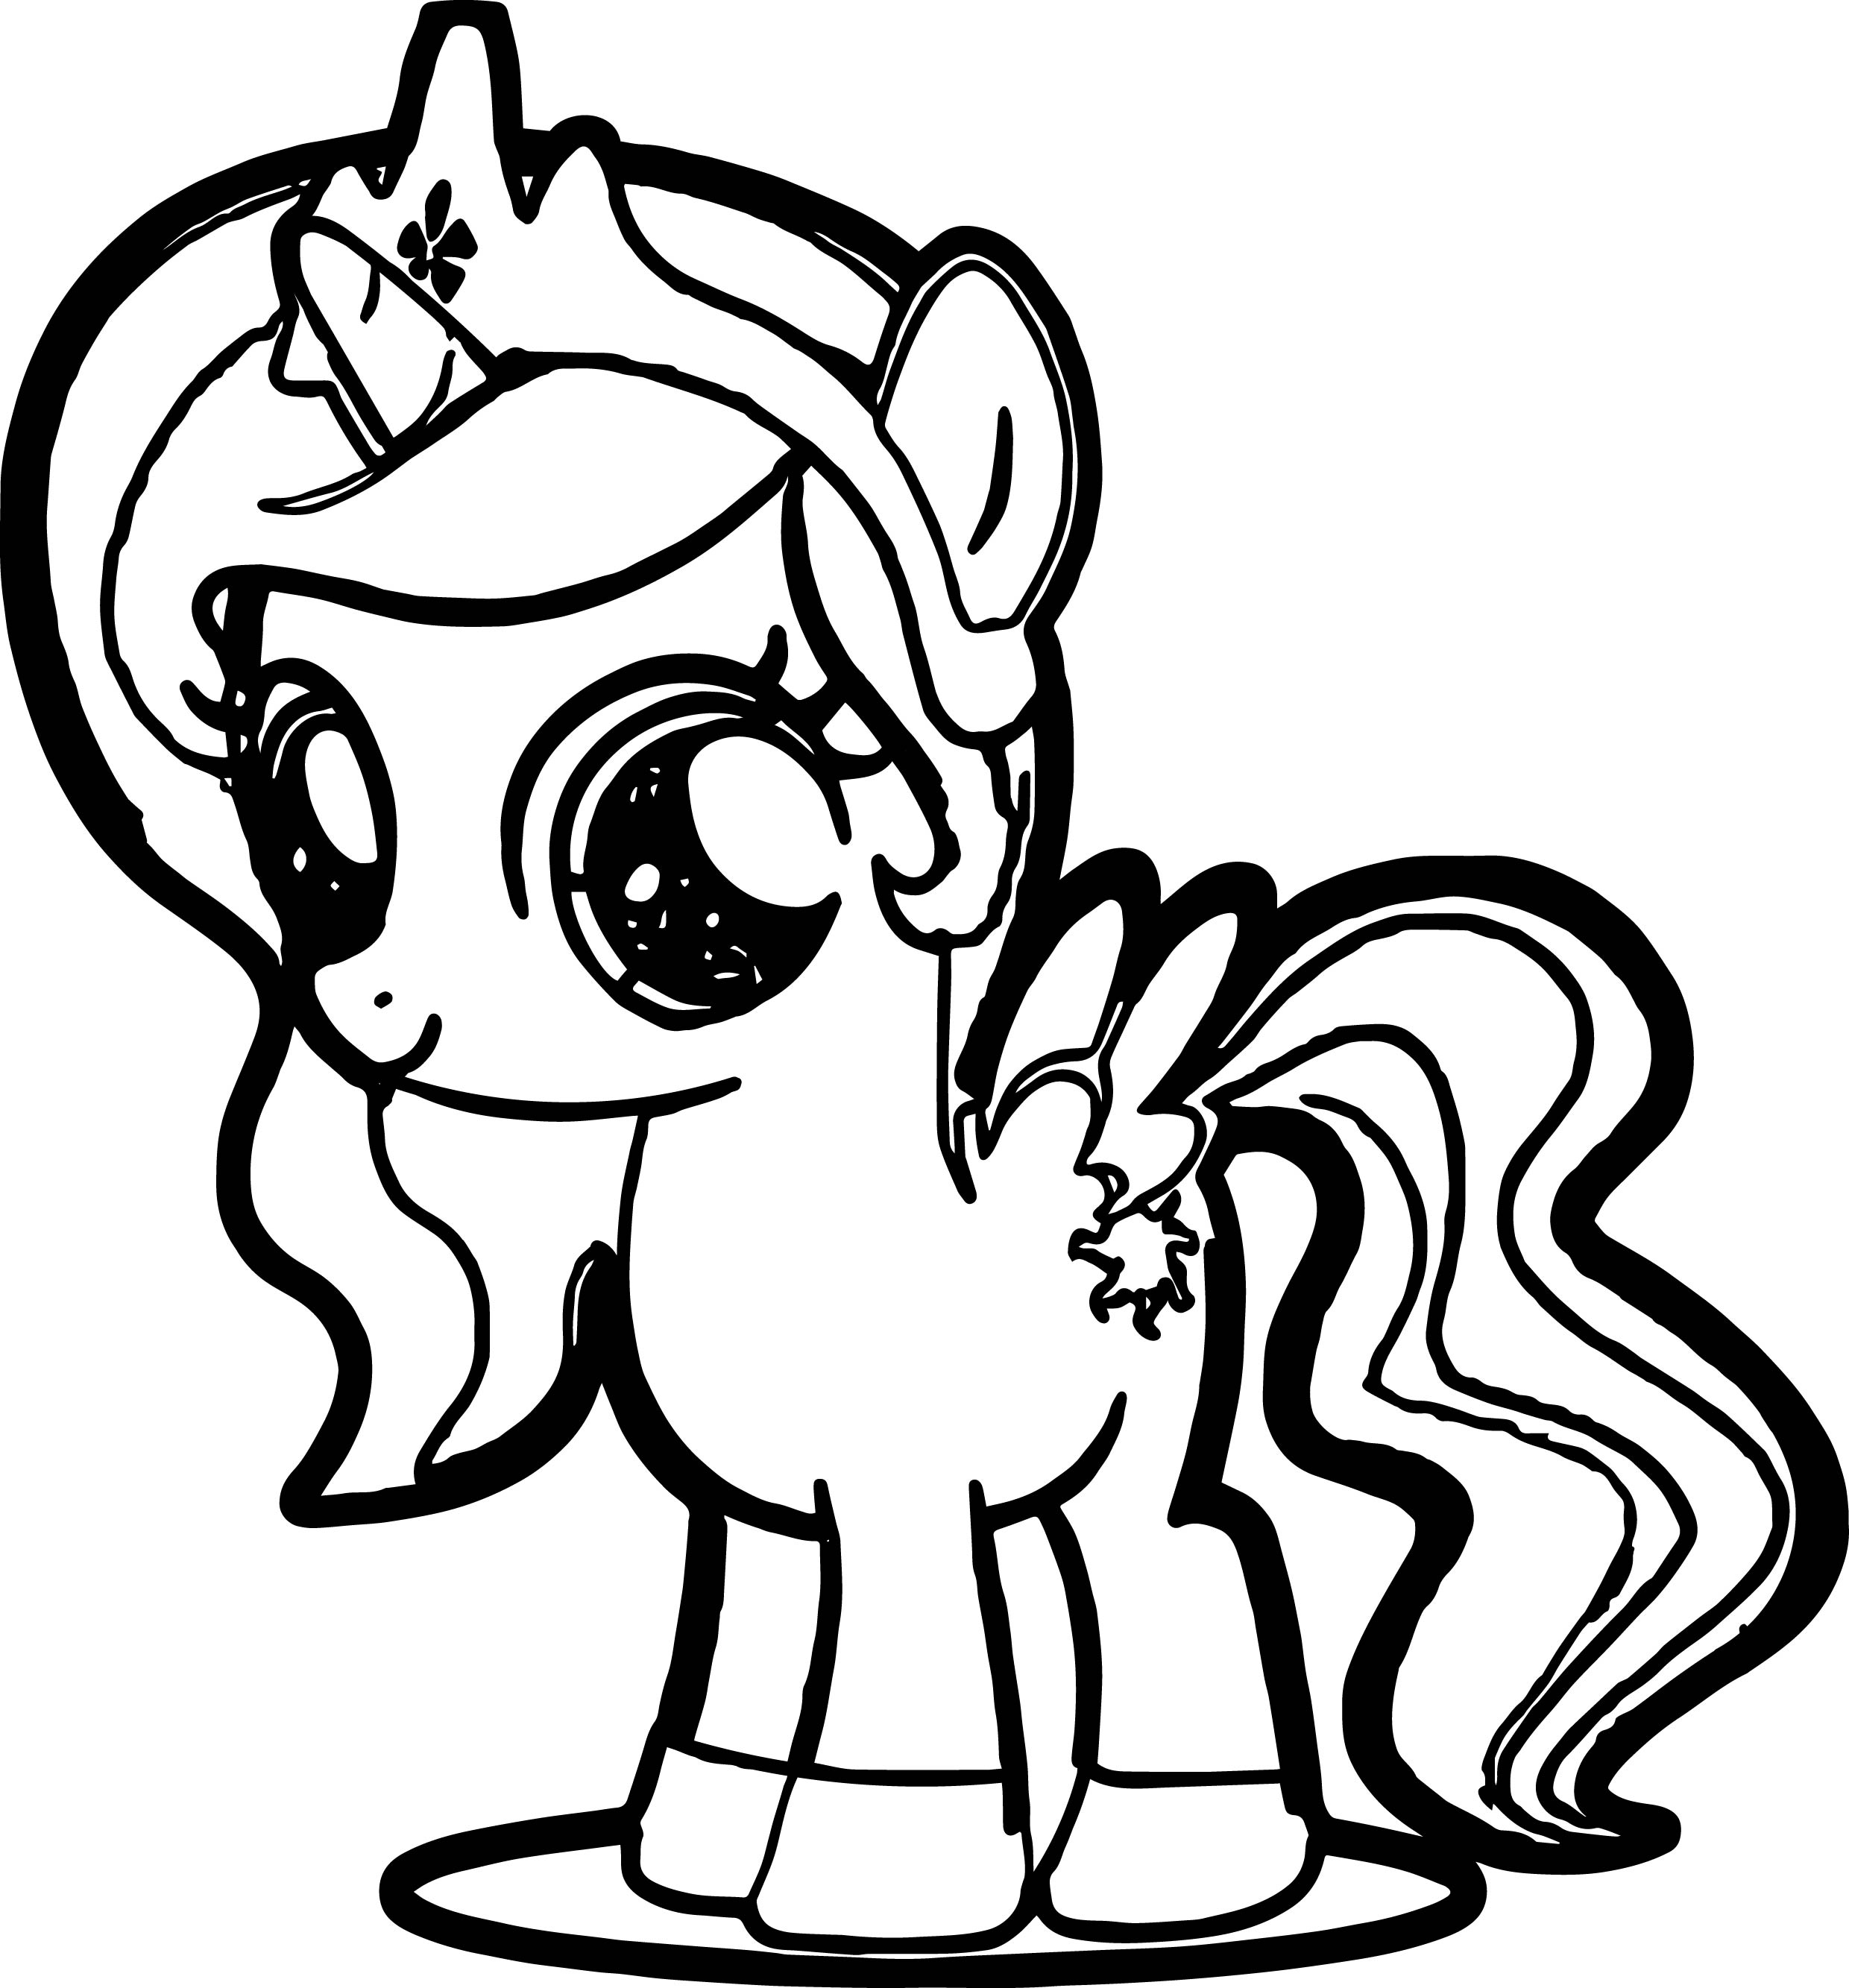 mlp colouring my little pony coloring pages colouring mlp 1 1